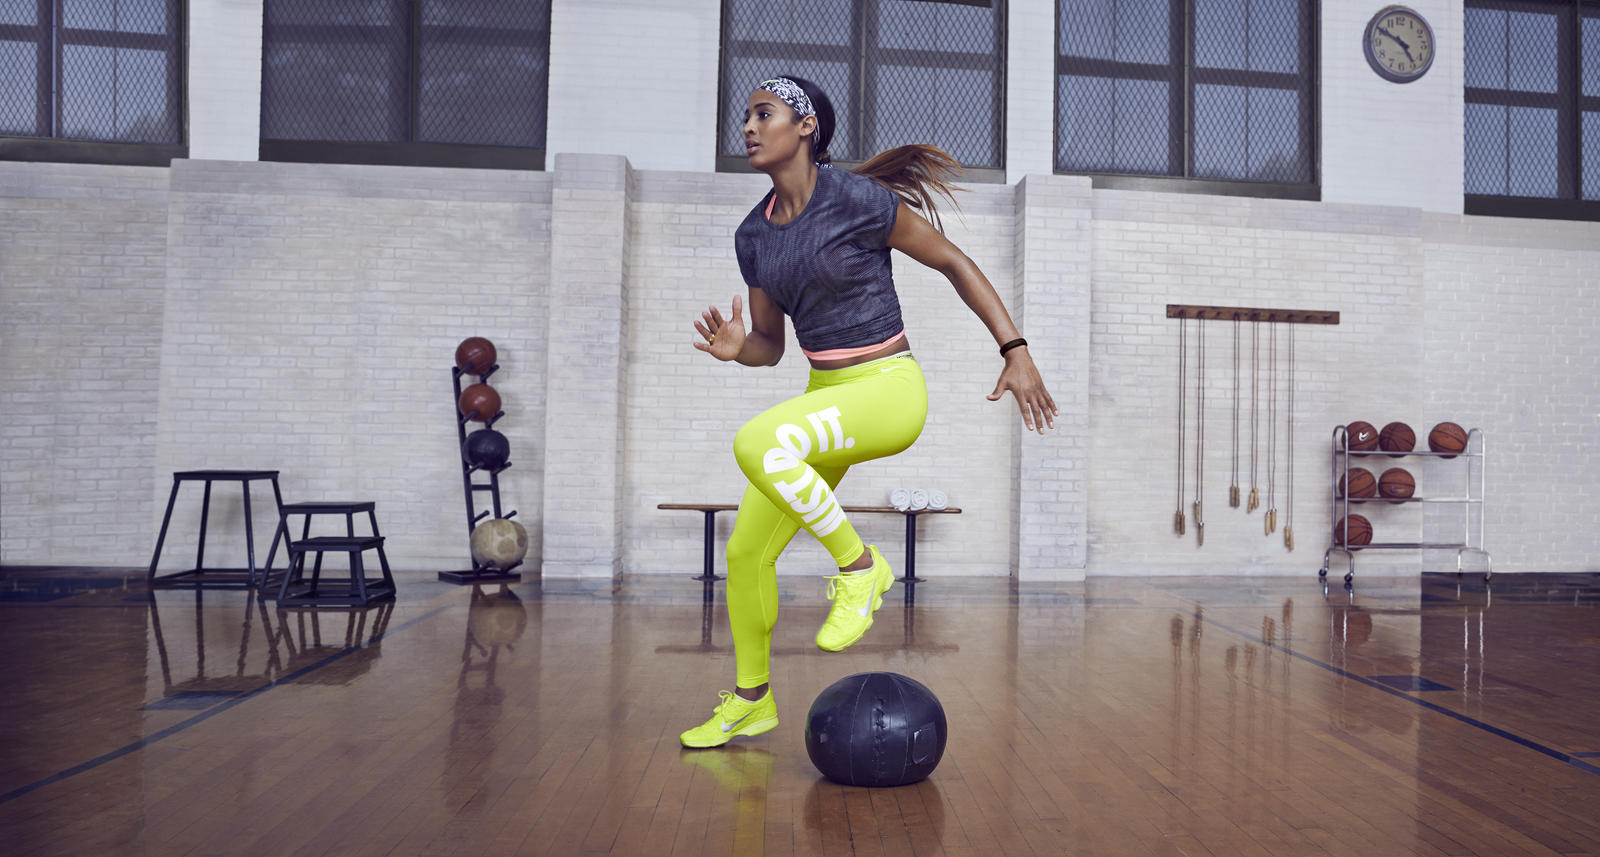 Wallpaper Tennis Girl Fitting In Five With Skylar Diggins N Tc Zoom In 5